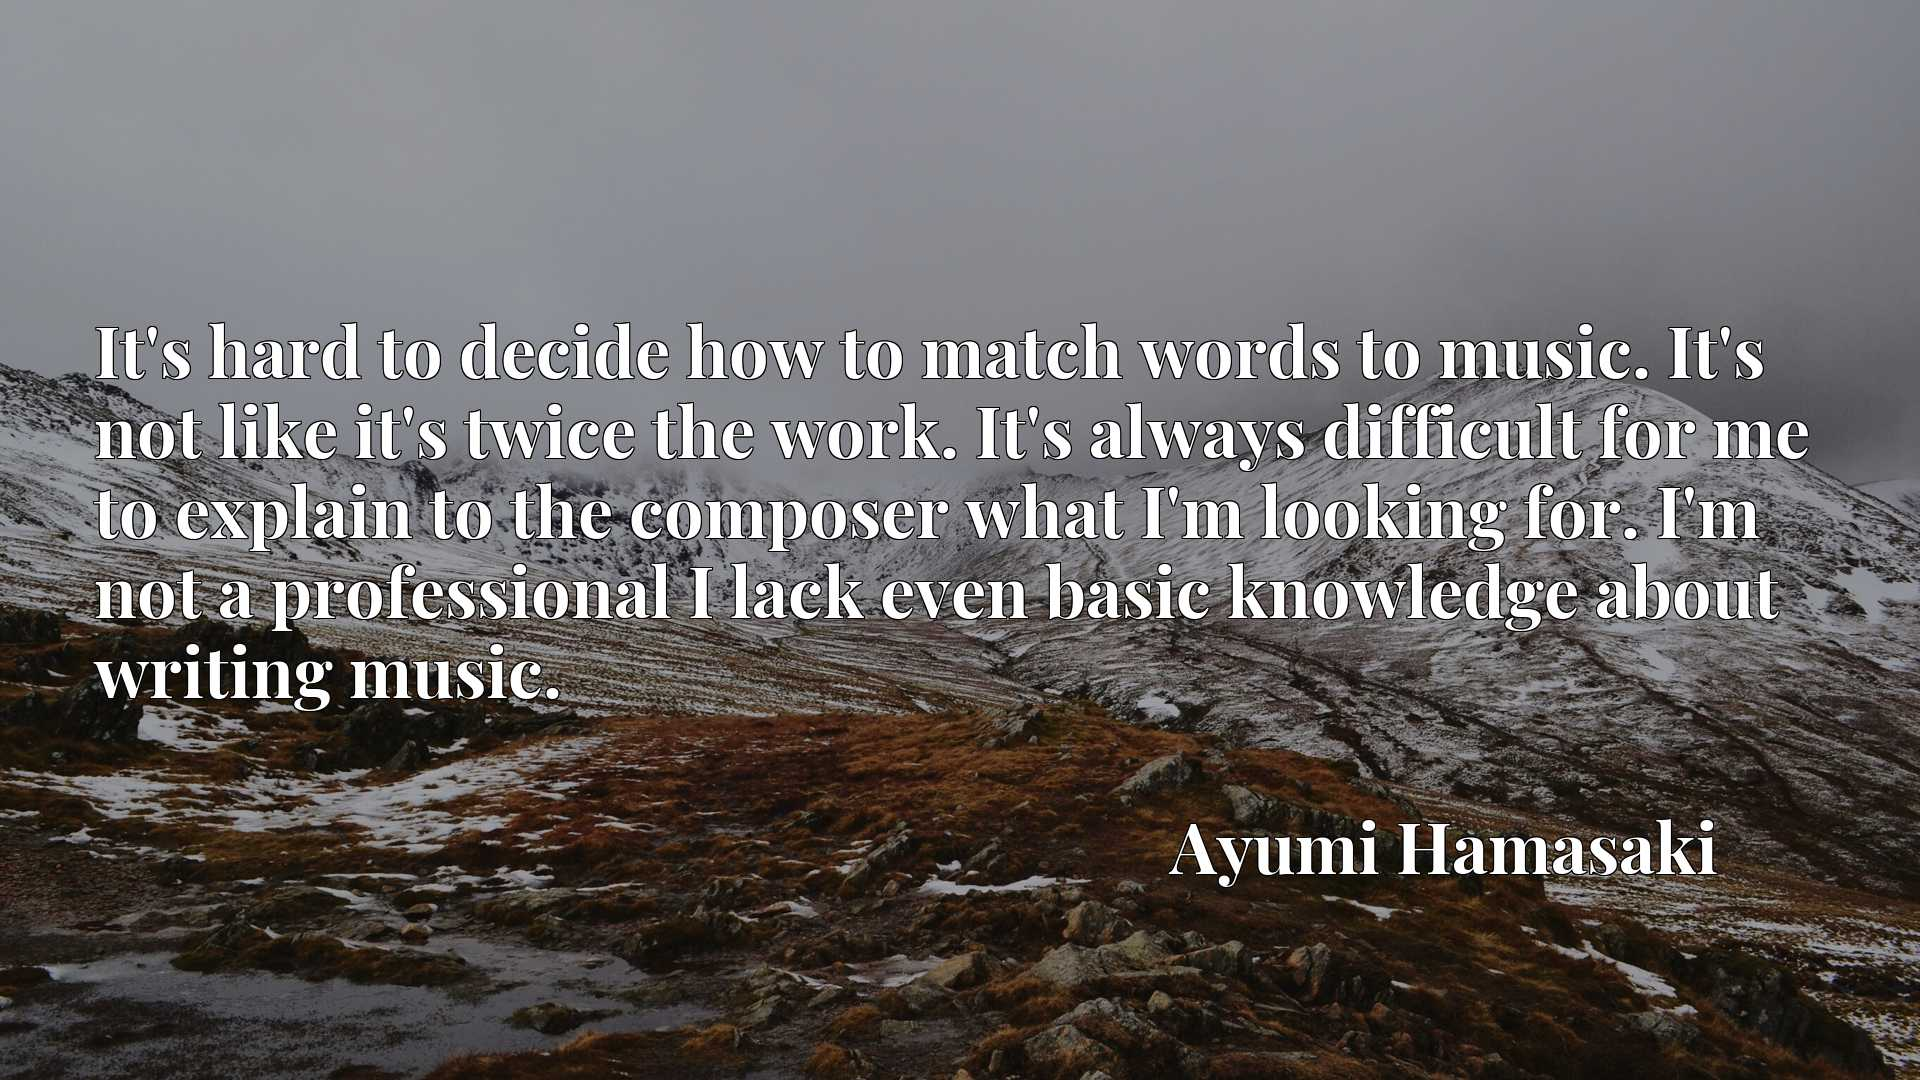 Quote Picture :It's hard to decide how to match words to music. It's not like it's twice the work. It's always difficult for me to explain to the composer what I'm looking for. I'm not a professional I lack even basic knowledge about writing music.